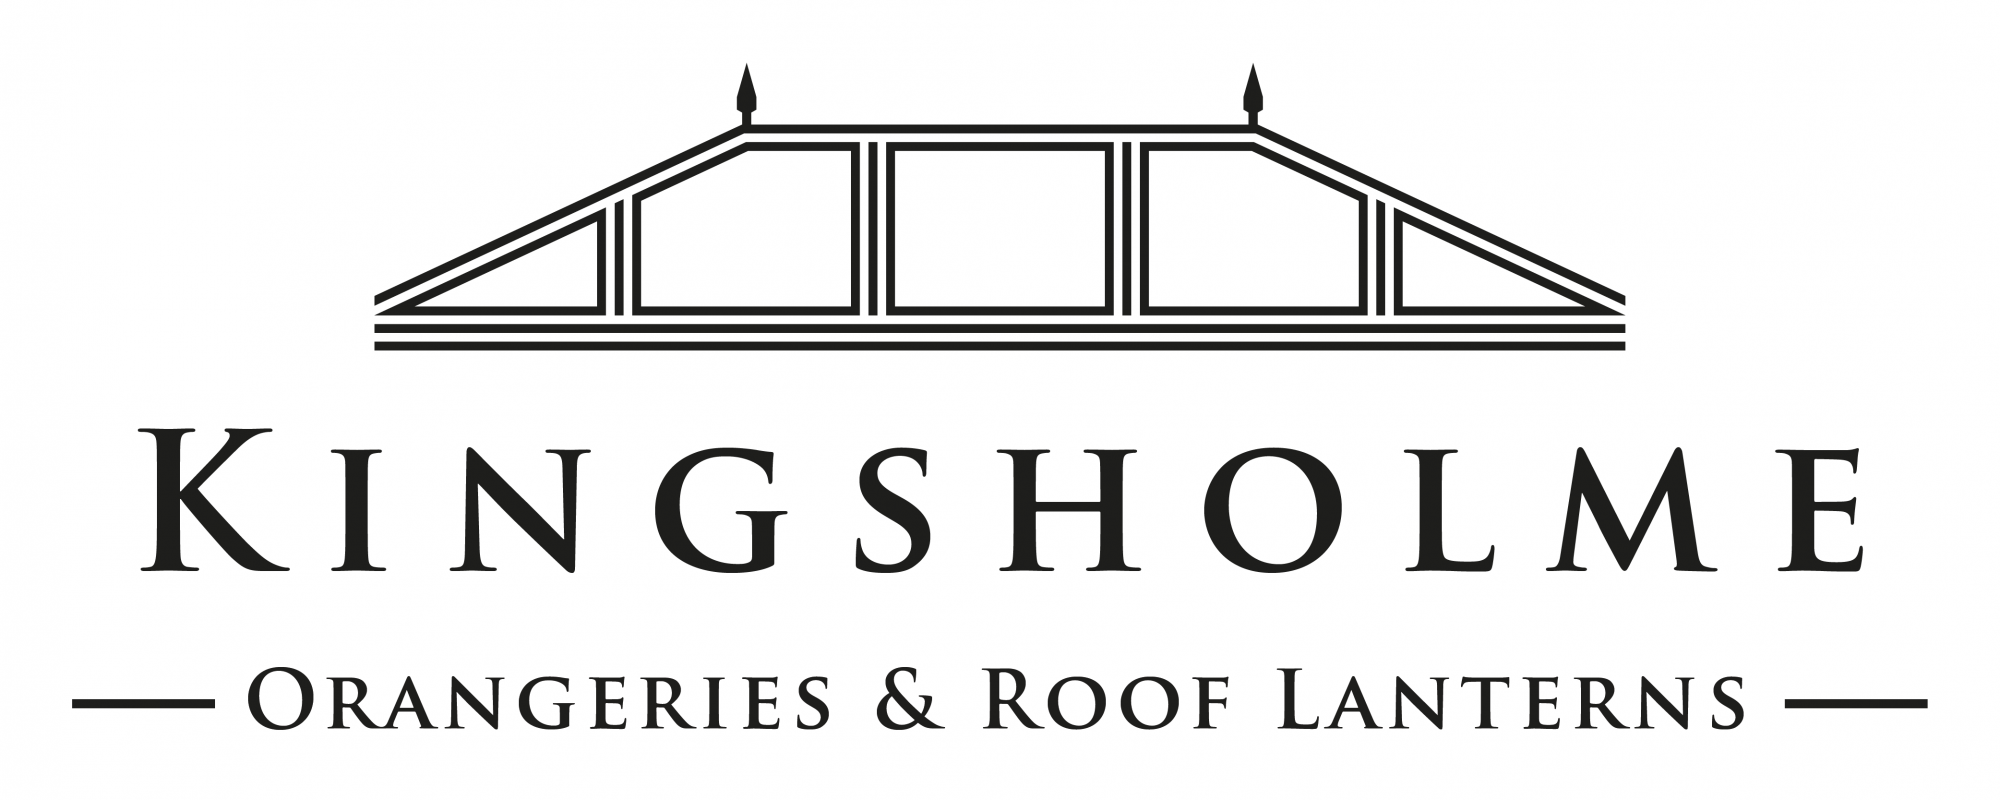 Gallery Archive - Orangeries & Roof Lanterns by Kingsholme